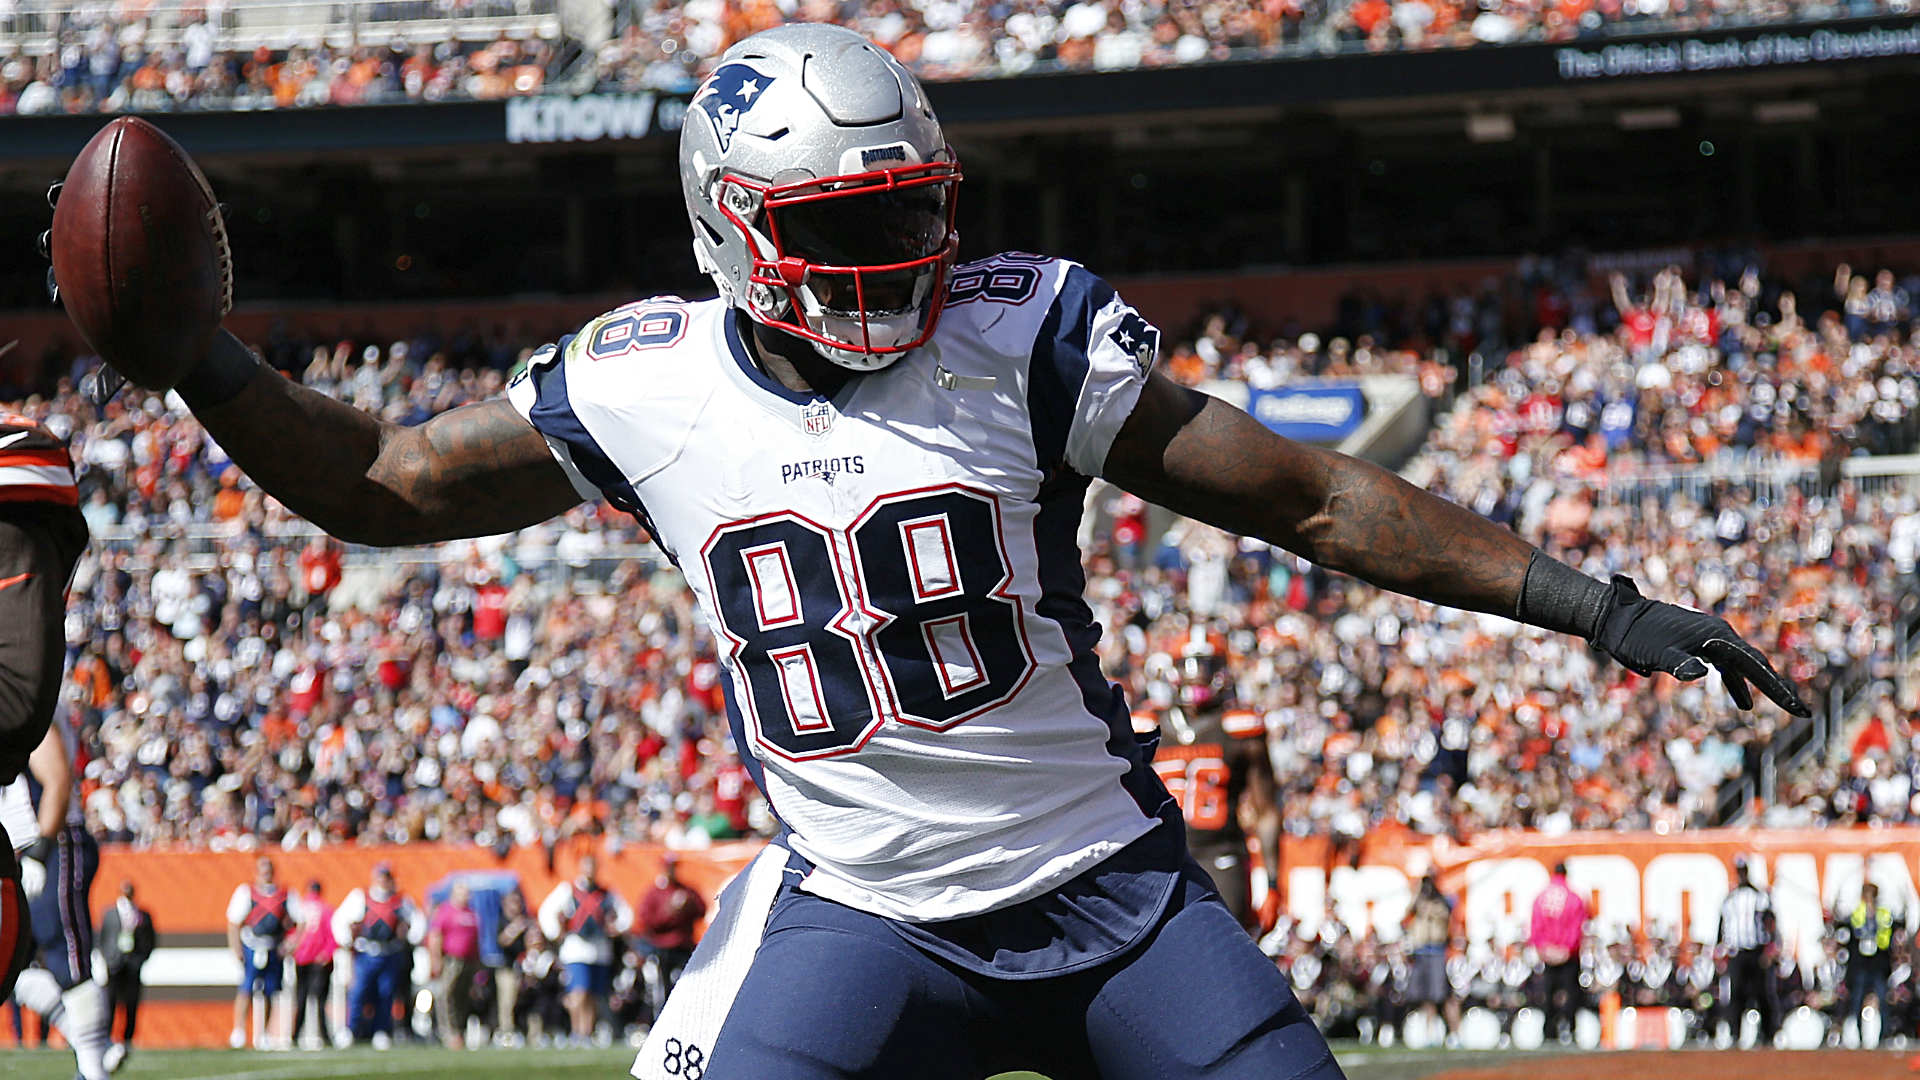 I'm watching The Super Bowl this weekend... Martellus-bennett-101016-usnews-getty-ftr_l1ojtl2b92a1hczw3lttjdy2